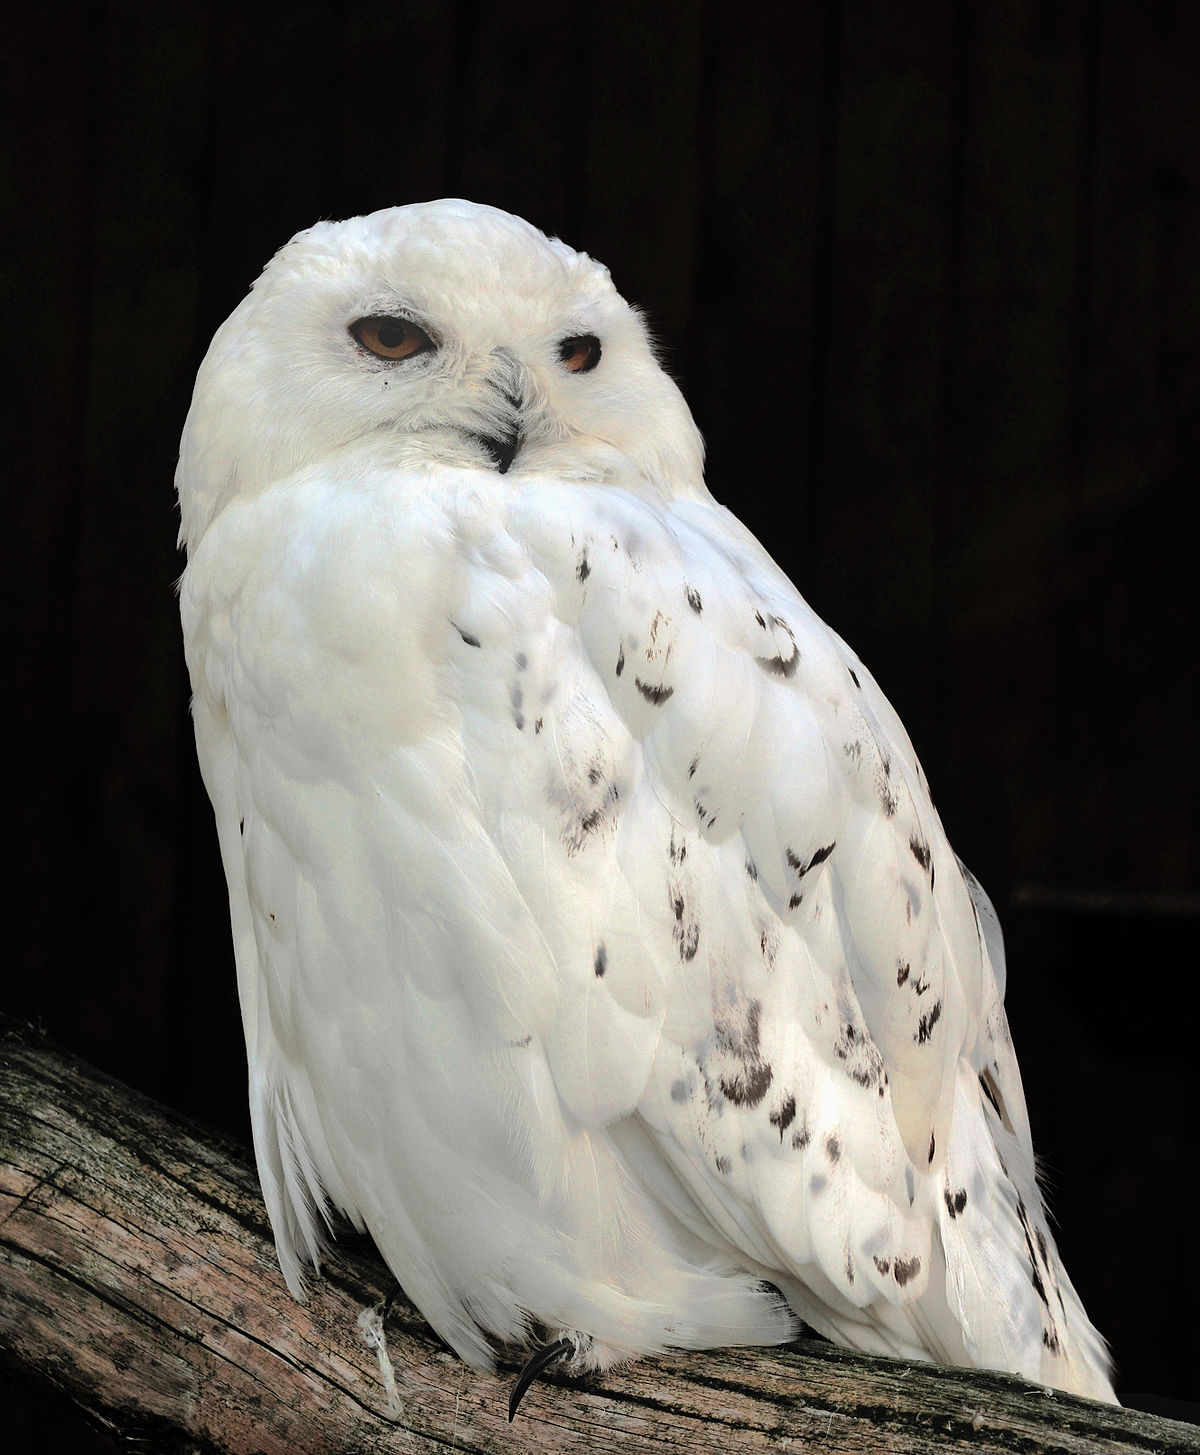 Snowy Owl Backgrounds on Wallpapers Vista